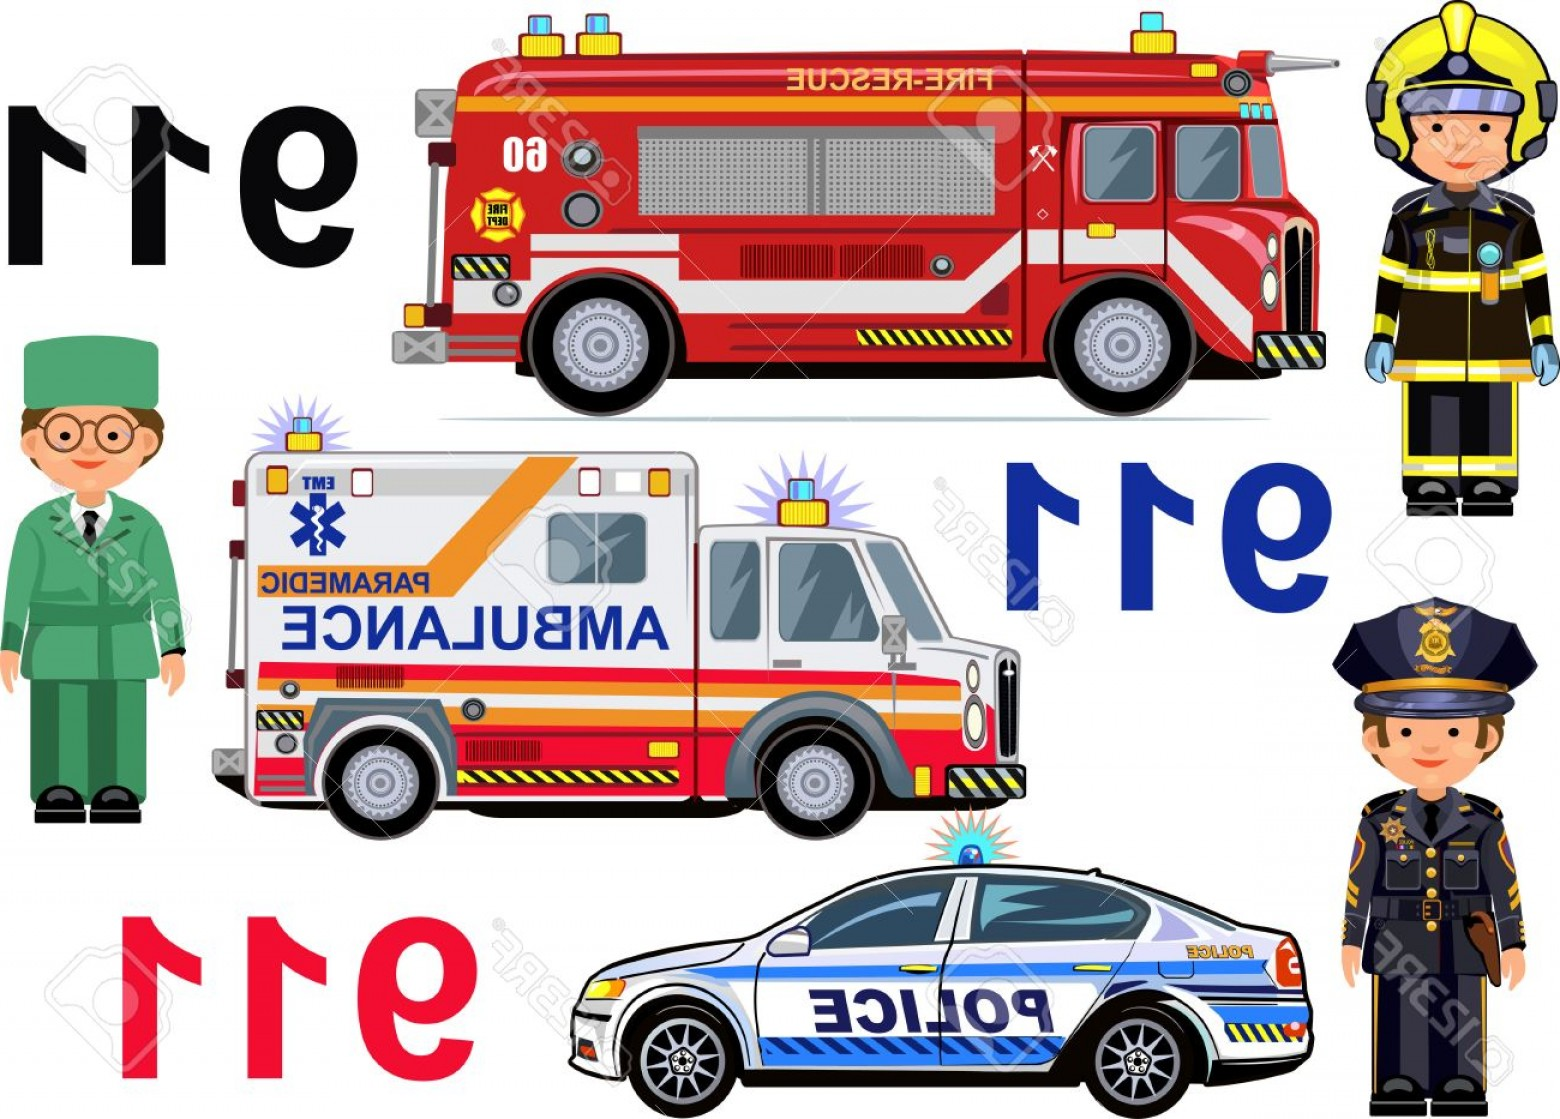 Custom Police Cars Vector: Photostock Vector Rescue Vehicles Fire Engine Ambulance Police Cars Paramedic Firefighter Police Officer